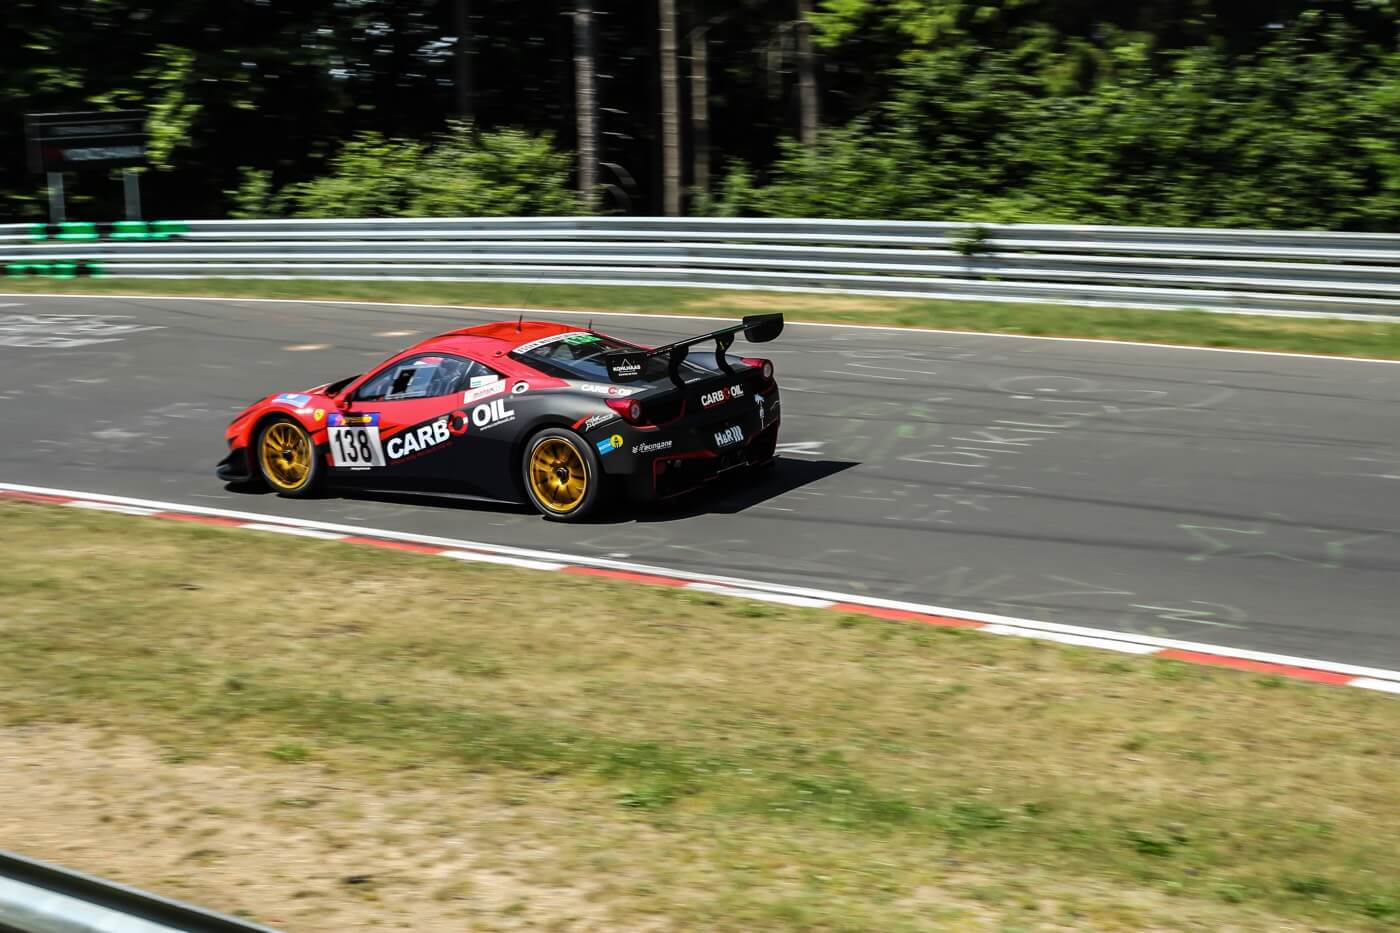 Carbo Oil Ferrari 458 VLN 2